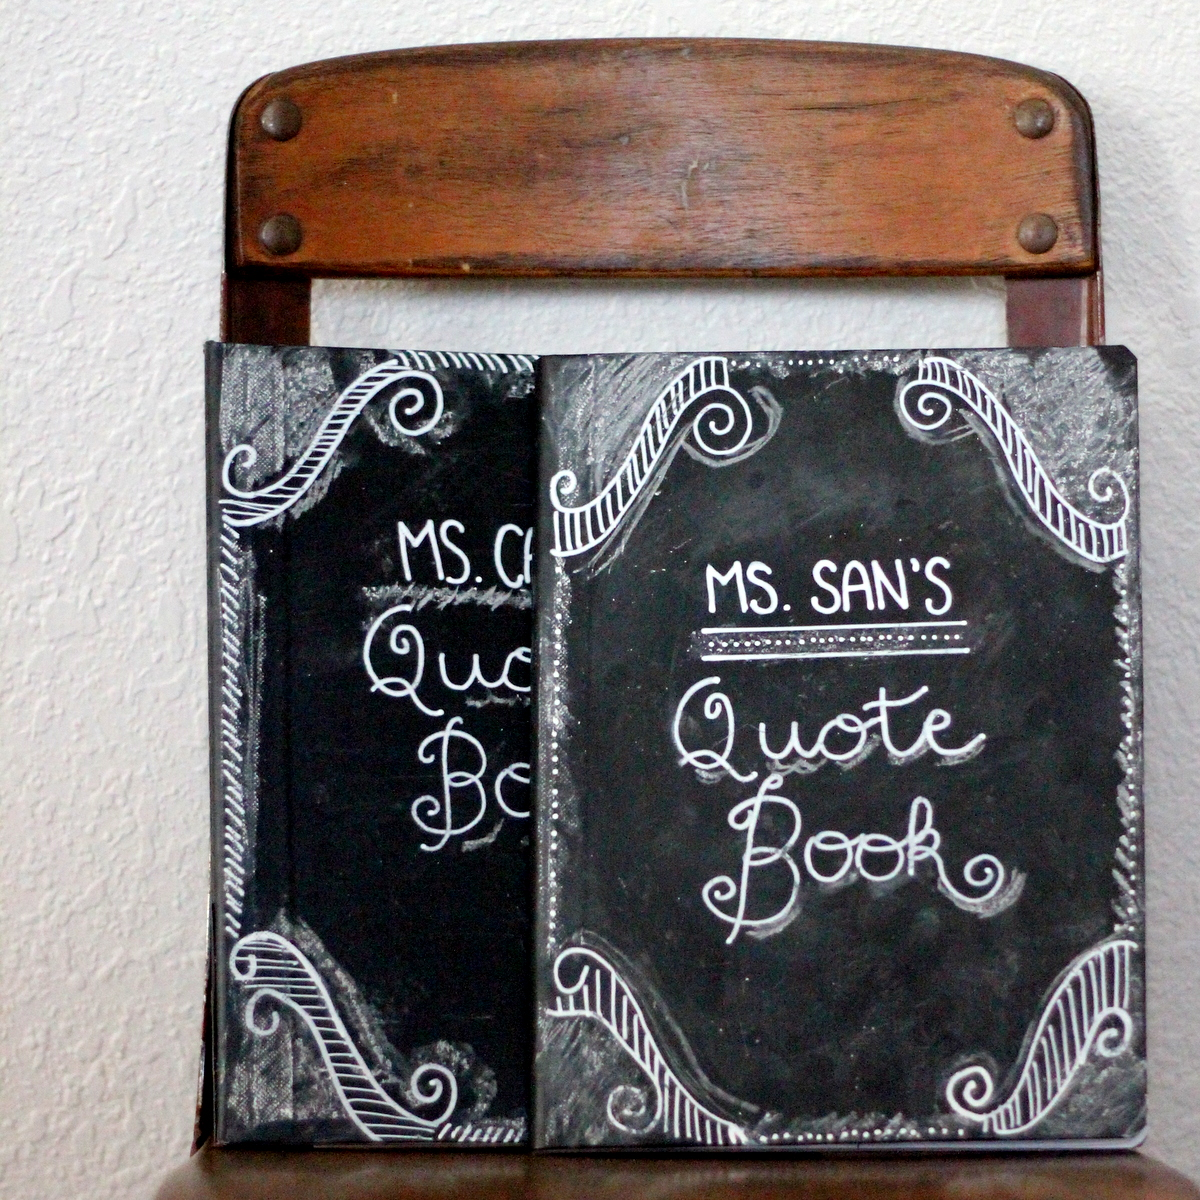 Chalkboard Designs Ideas chalk design ideas google search chalkboard Teacher Appreciation Gift Idea Chalkboard Journal Chalkboard Designs Ideas